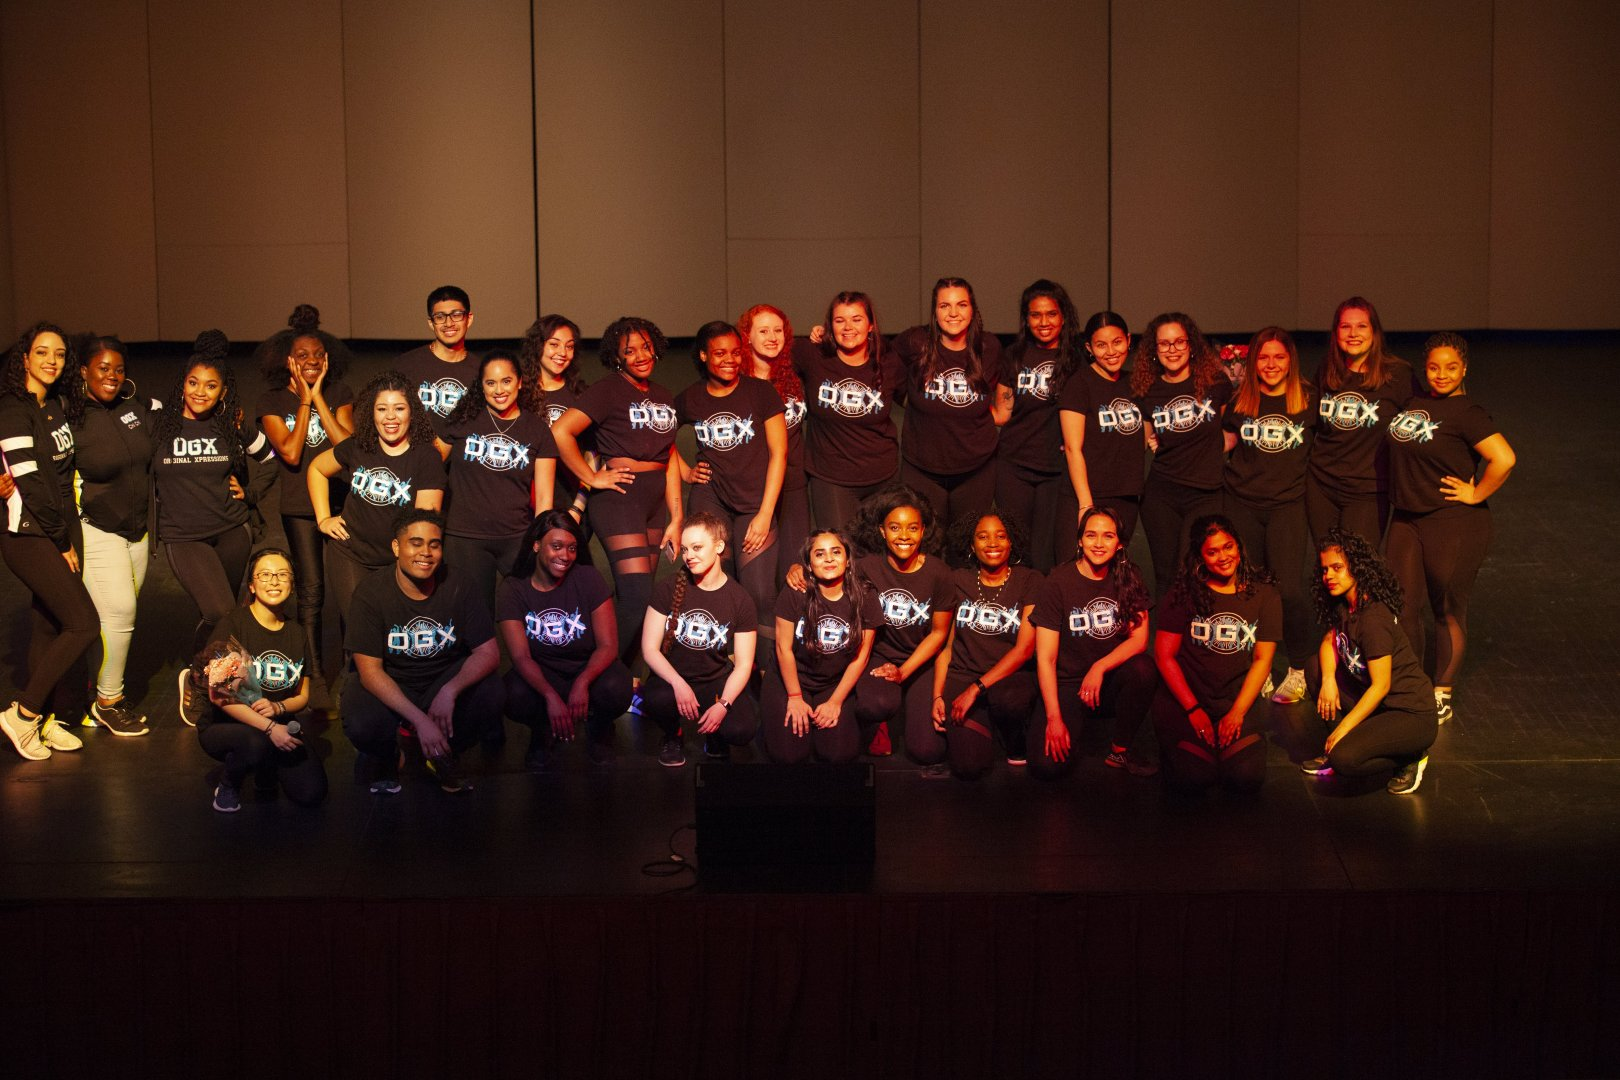 OGX at their showcase Spring 2019